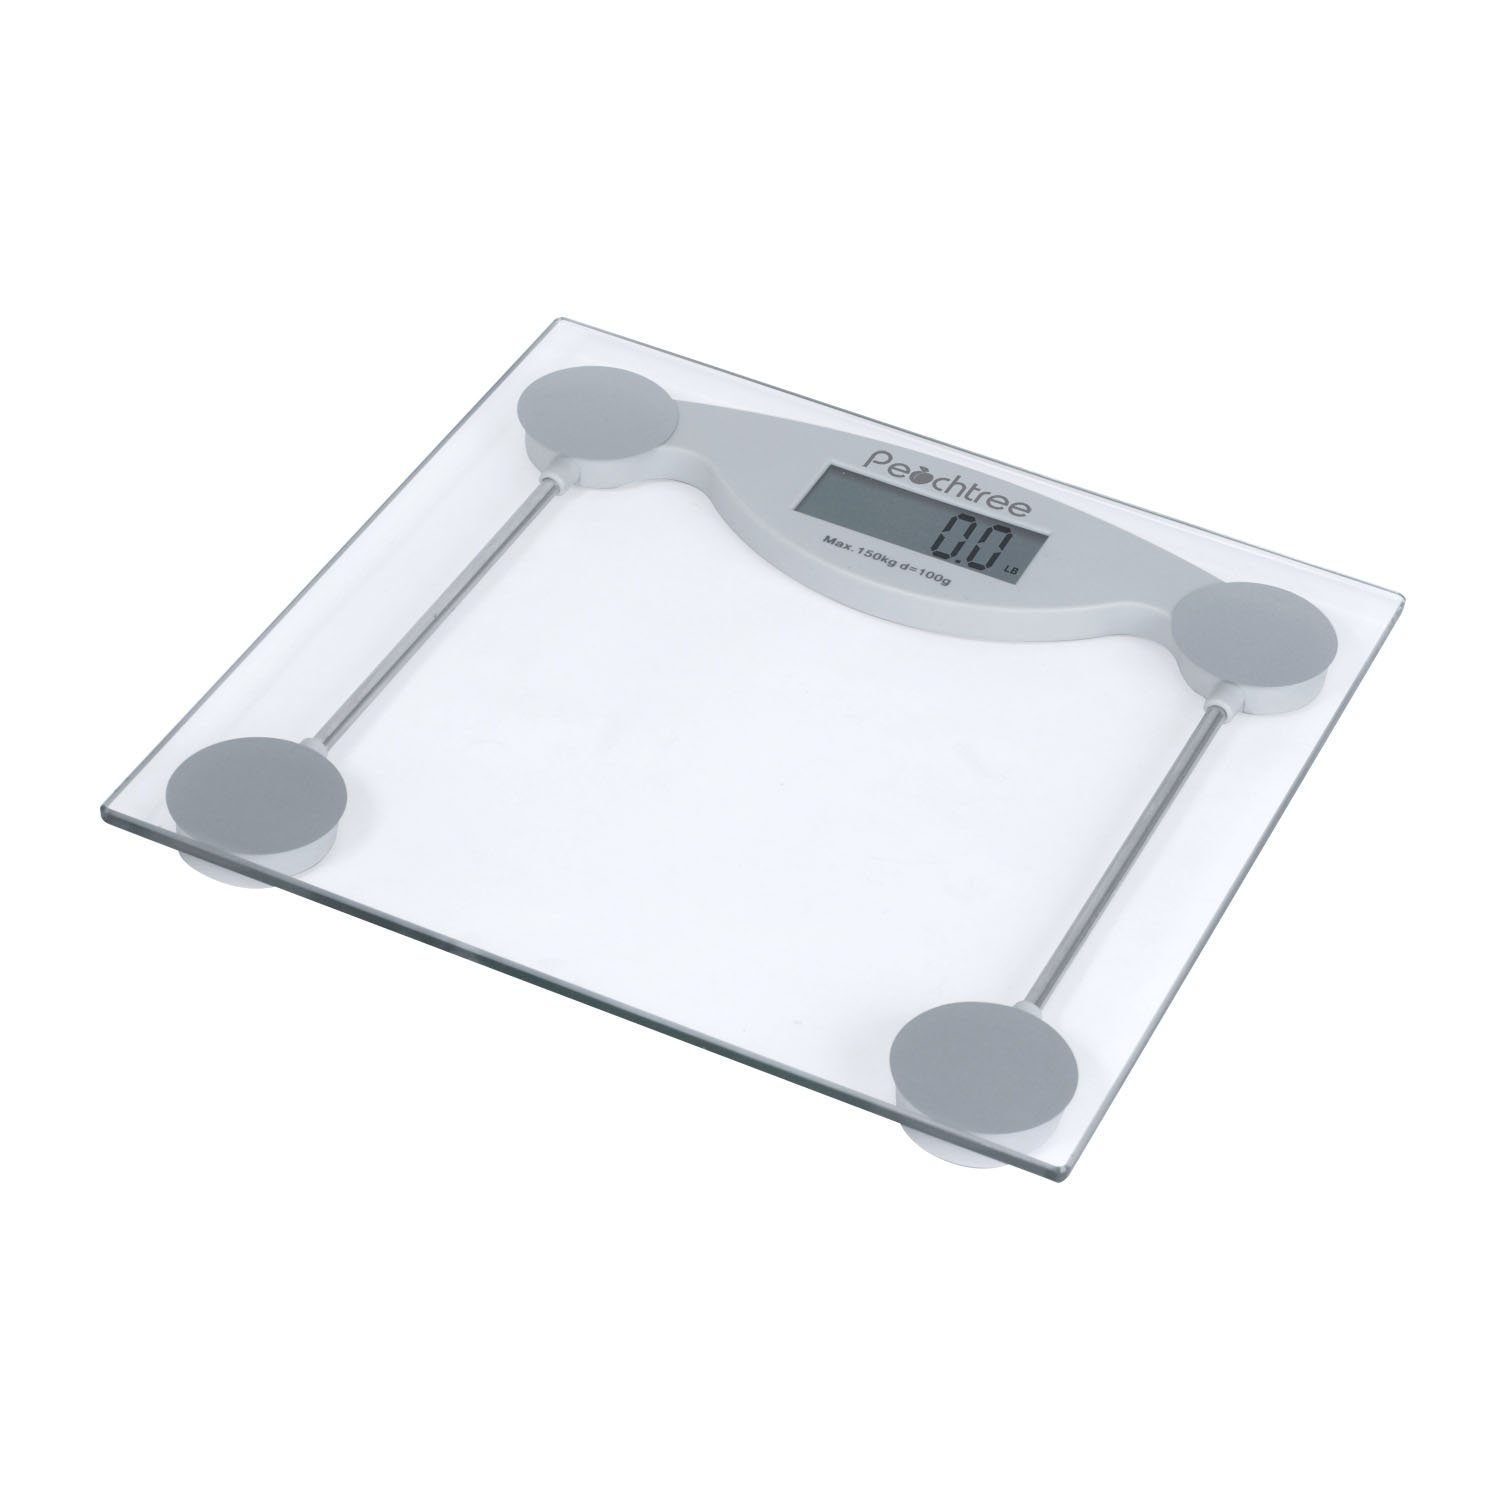 Superbe Amazon.com: Peachtree GS 150 Tempered Glass Digital Bathroom Scale With LCD  Display And 330 Pound Capacity: Health U0026 Personal Care